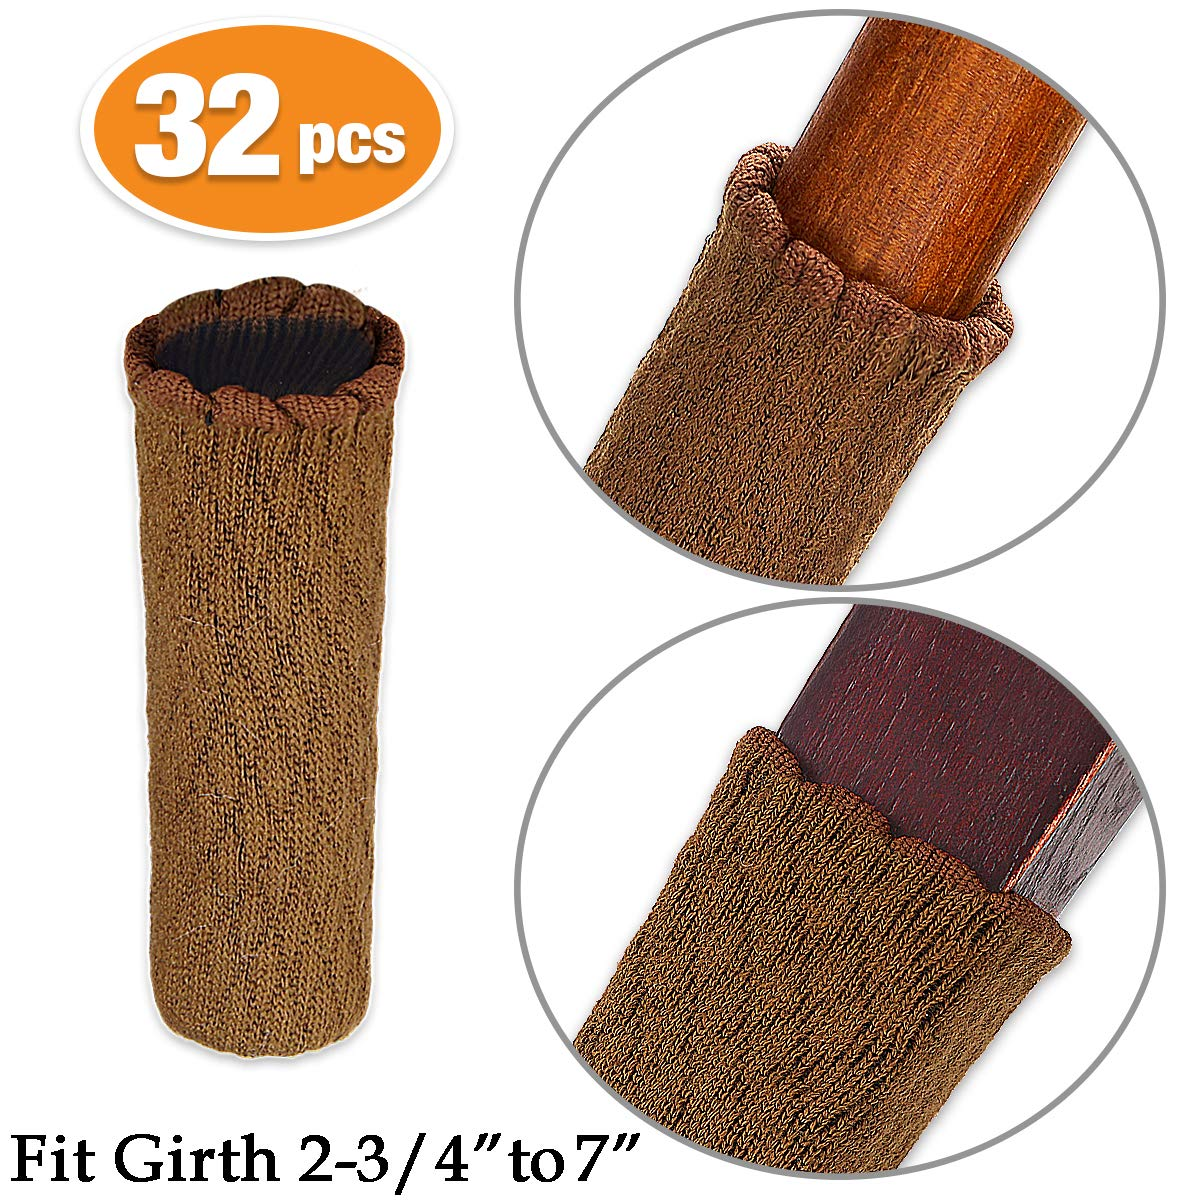 MelonBoat Chair Leg Socks, Hardwood Floor Protectors, Furniture Feet Caps Covers, Fit Girth 2-3/4'' to 7'', 32 Pack Cross Knitted Brown